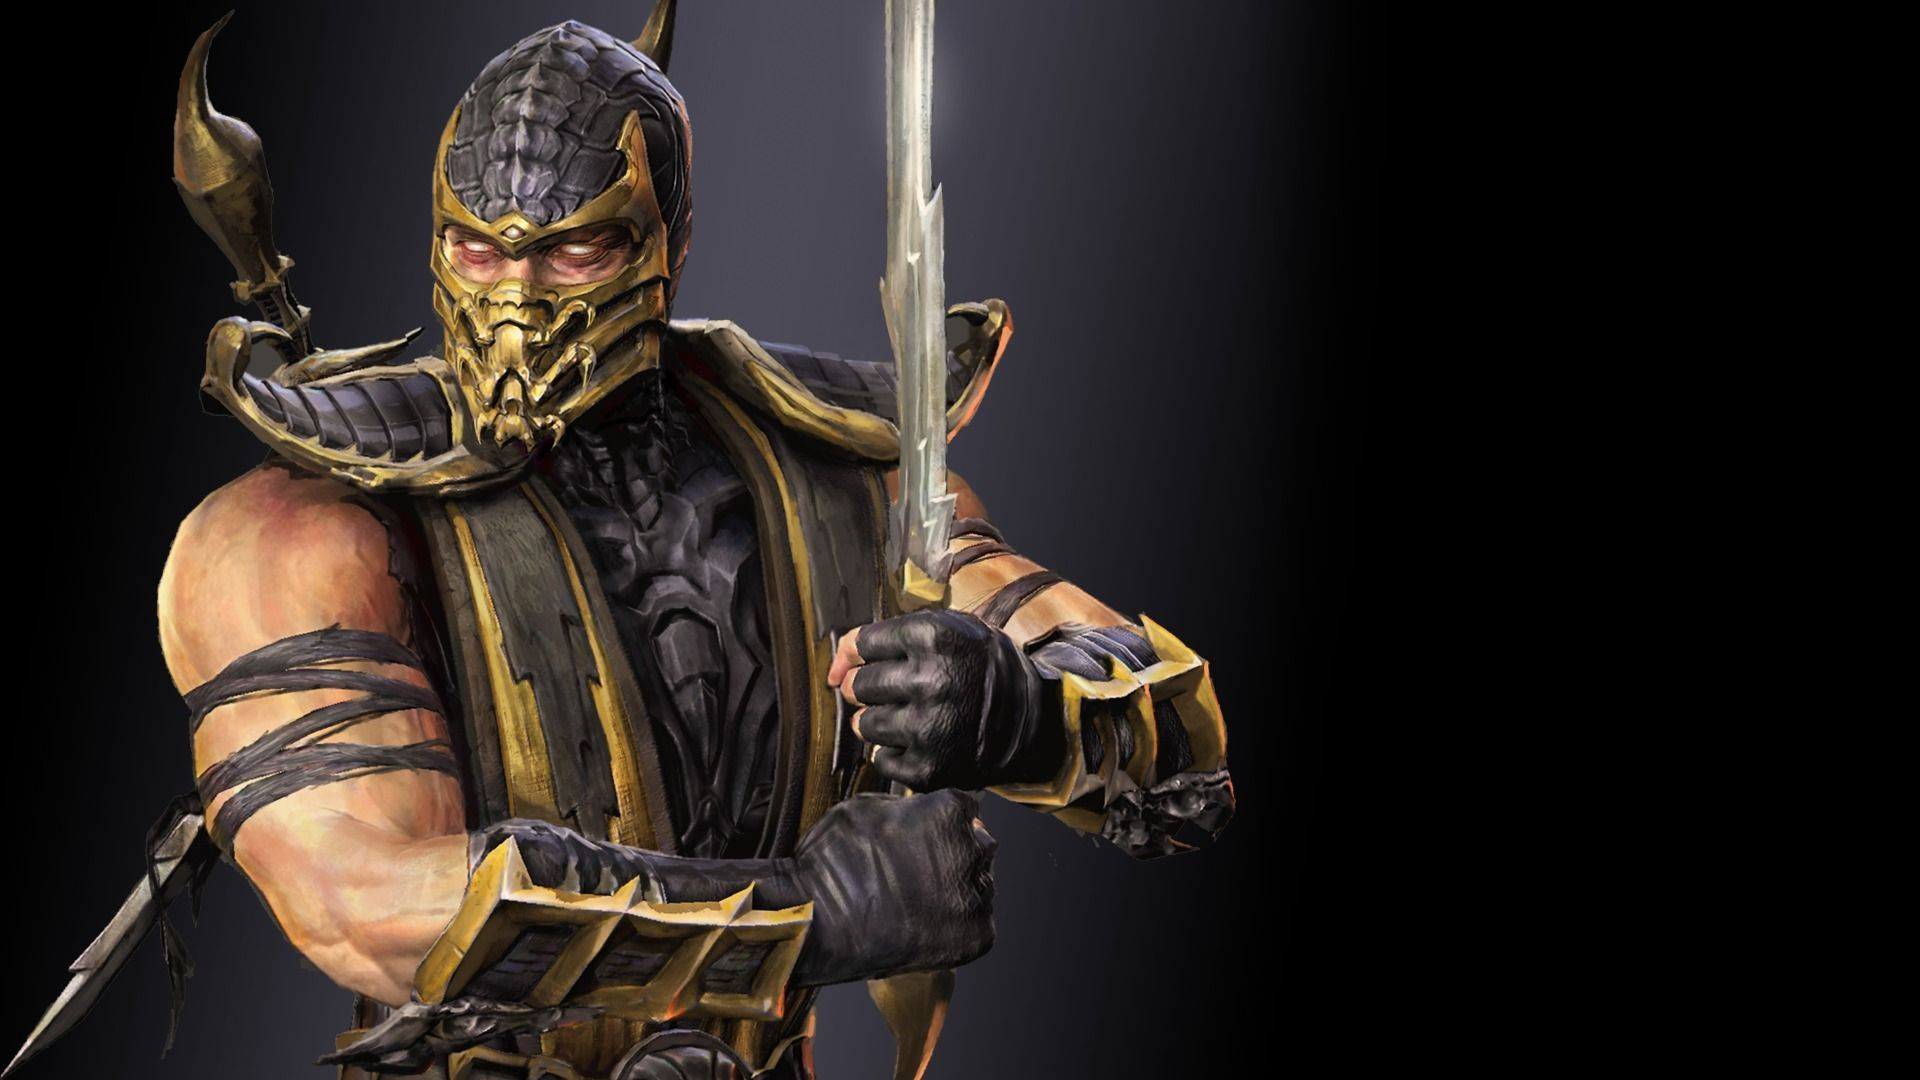 scorpion in mortal kombat hd wallpaper 4068 1920x1080